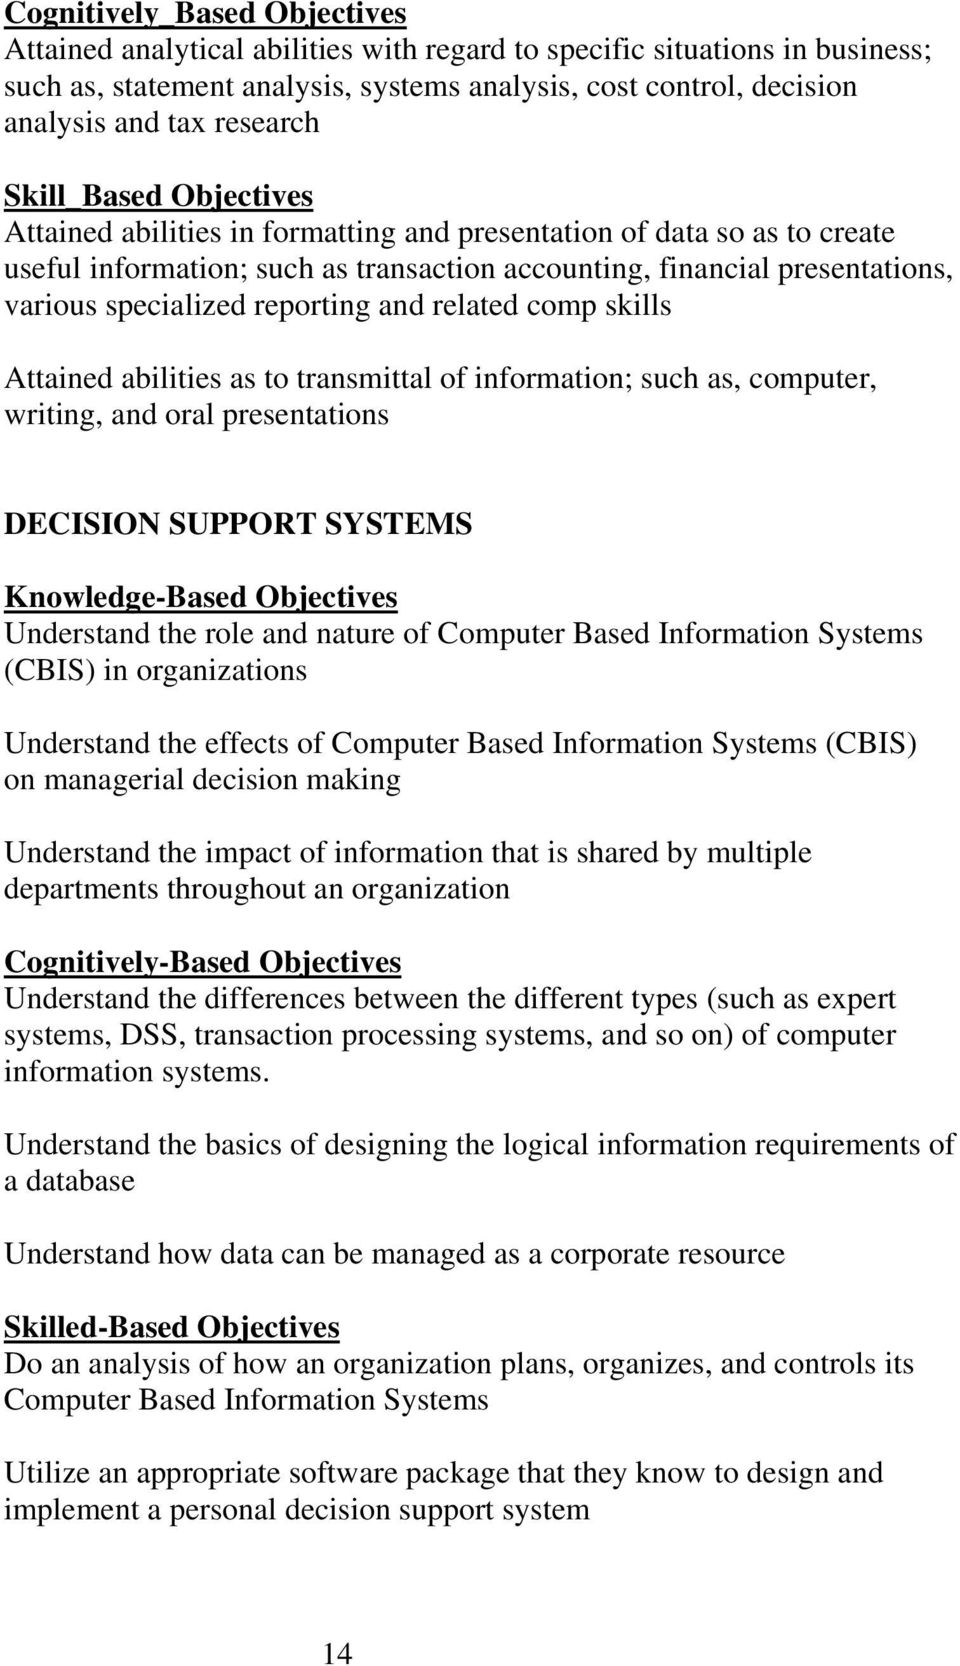 specialized reporting and related comp skills Attained abilities as to transmittal of information; such as, computer, writing, and oral presentations DECISION SUPPORT SYSTEMS Knowledge-Based